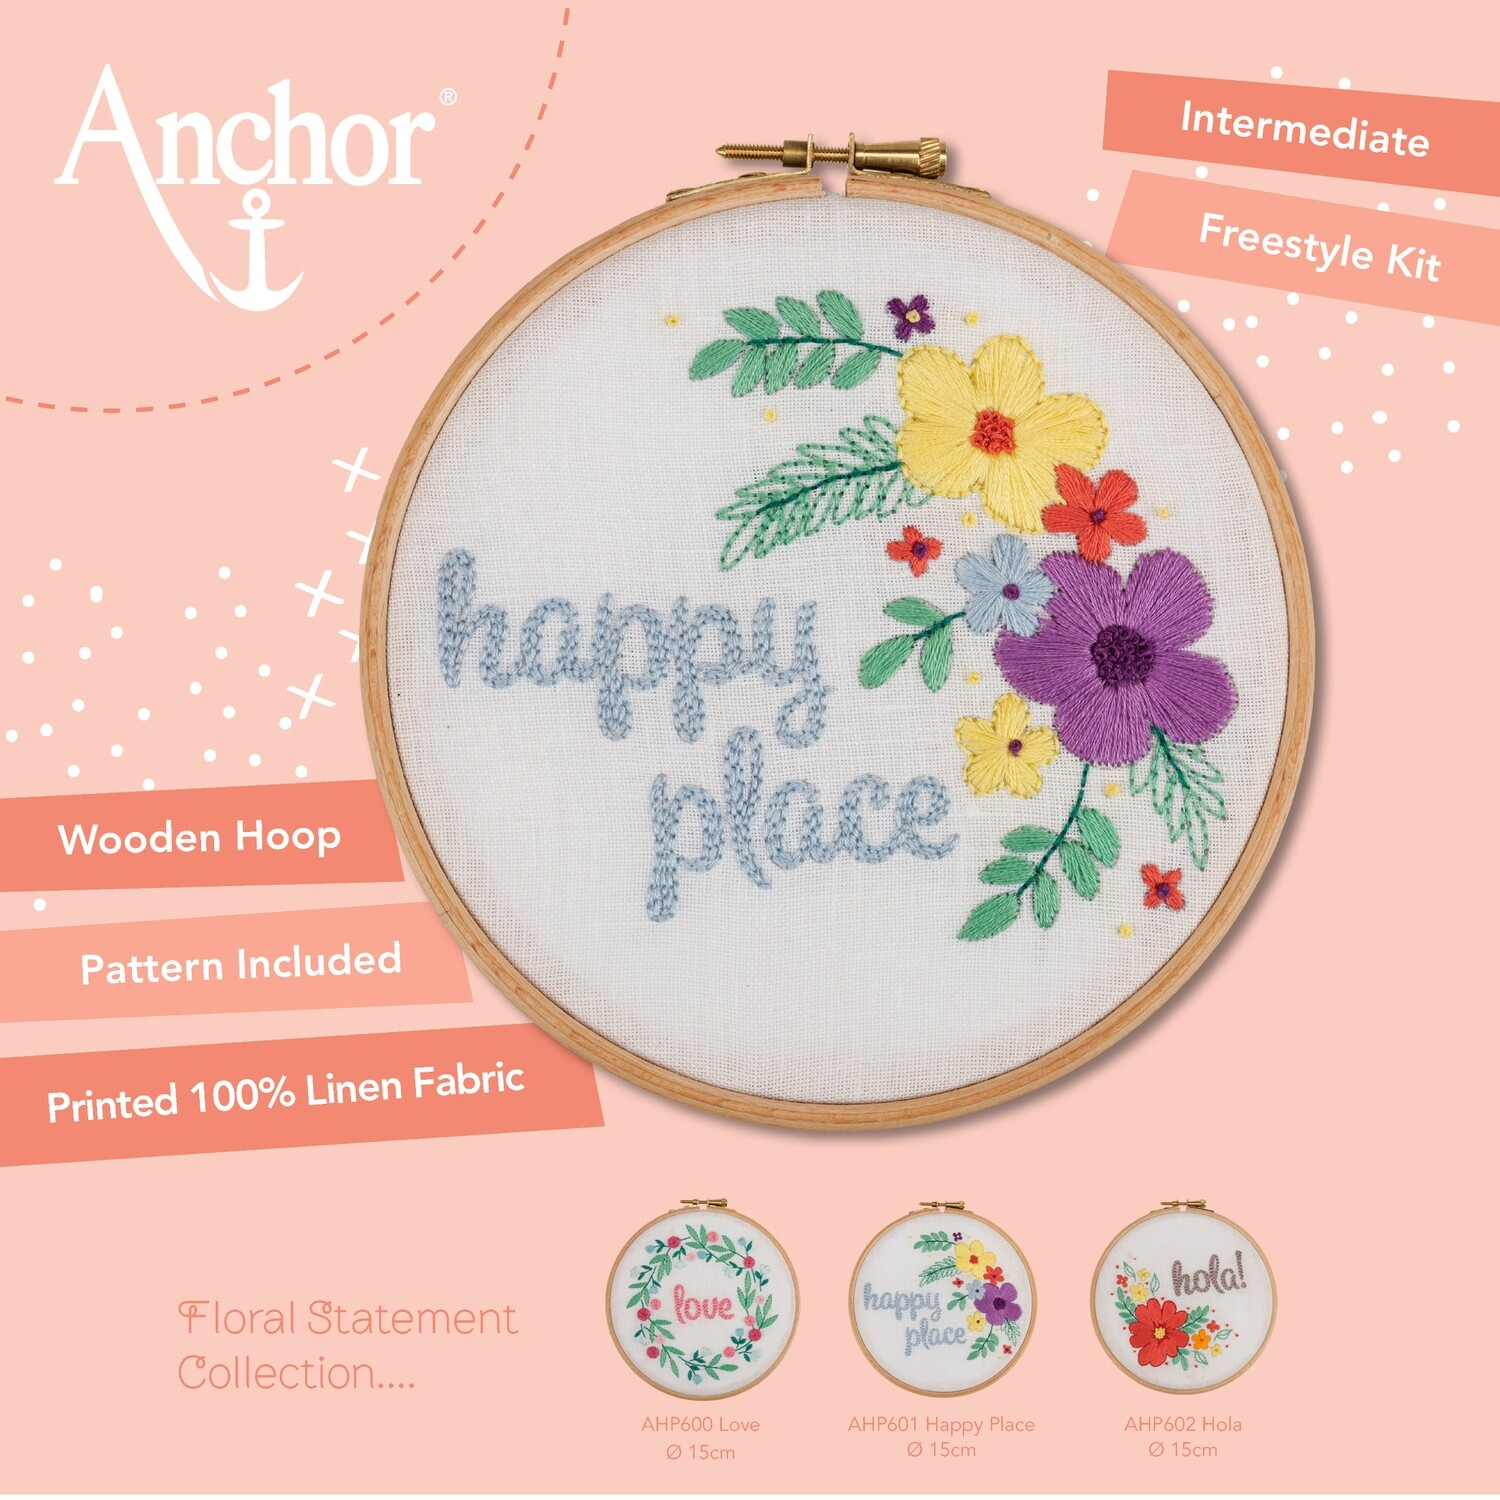 Anchor Starter Freestyle Kit - Happy Place Hoop